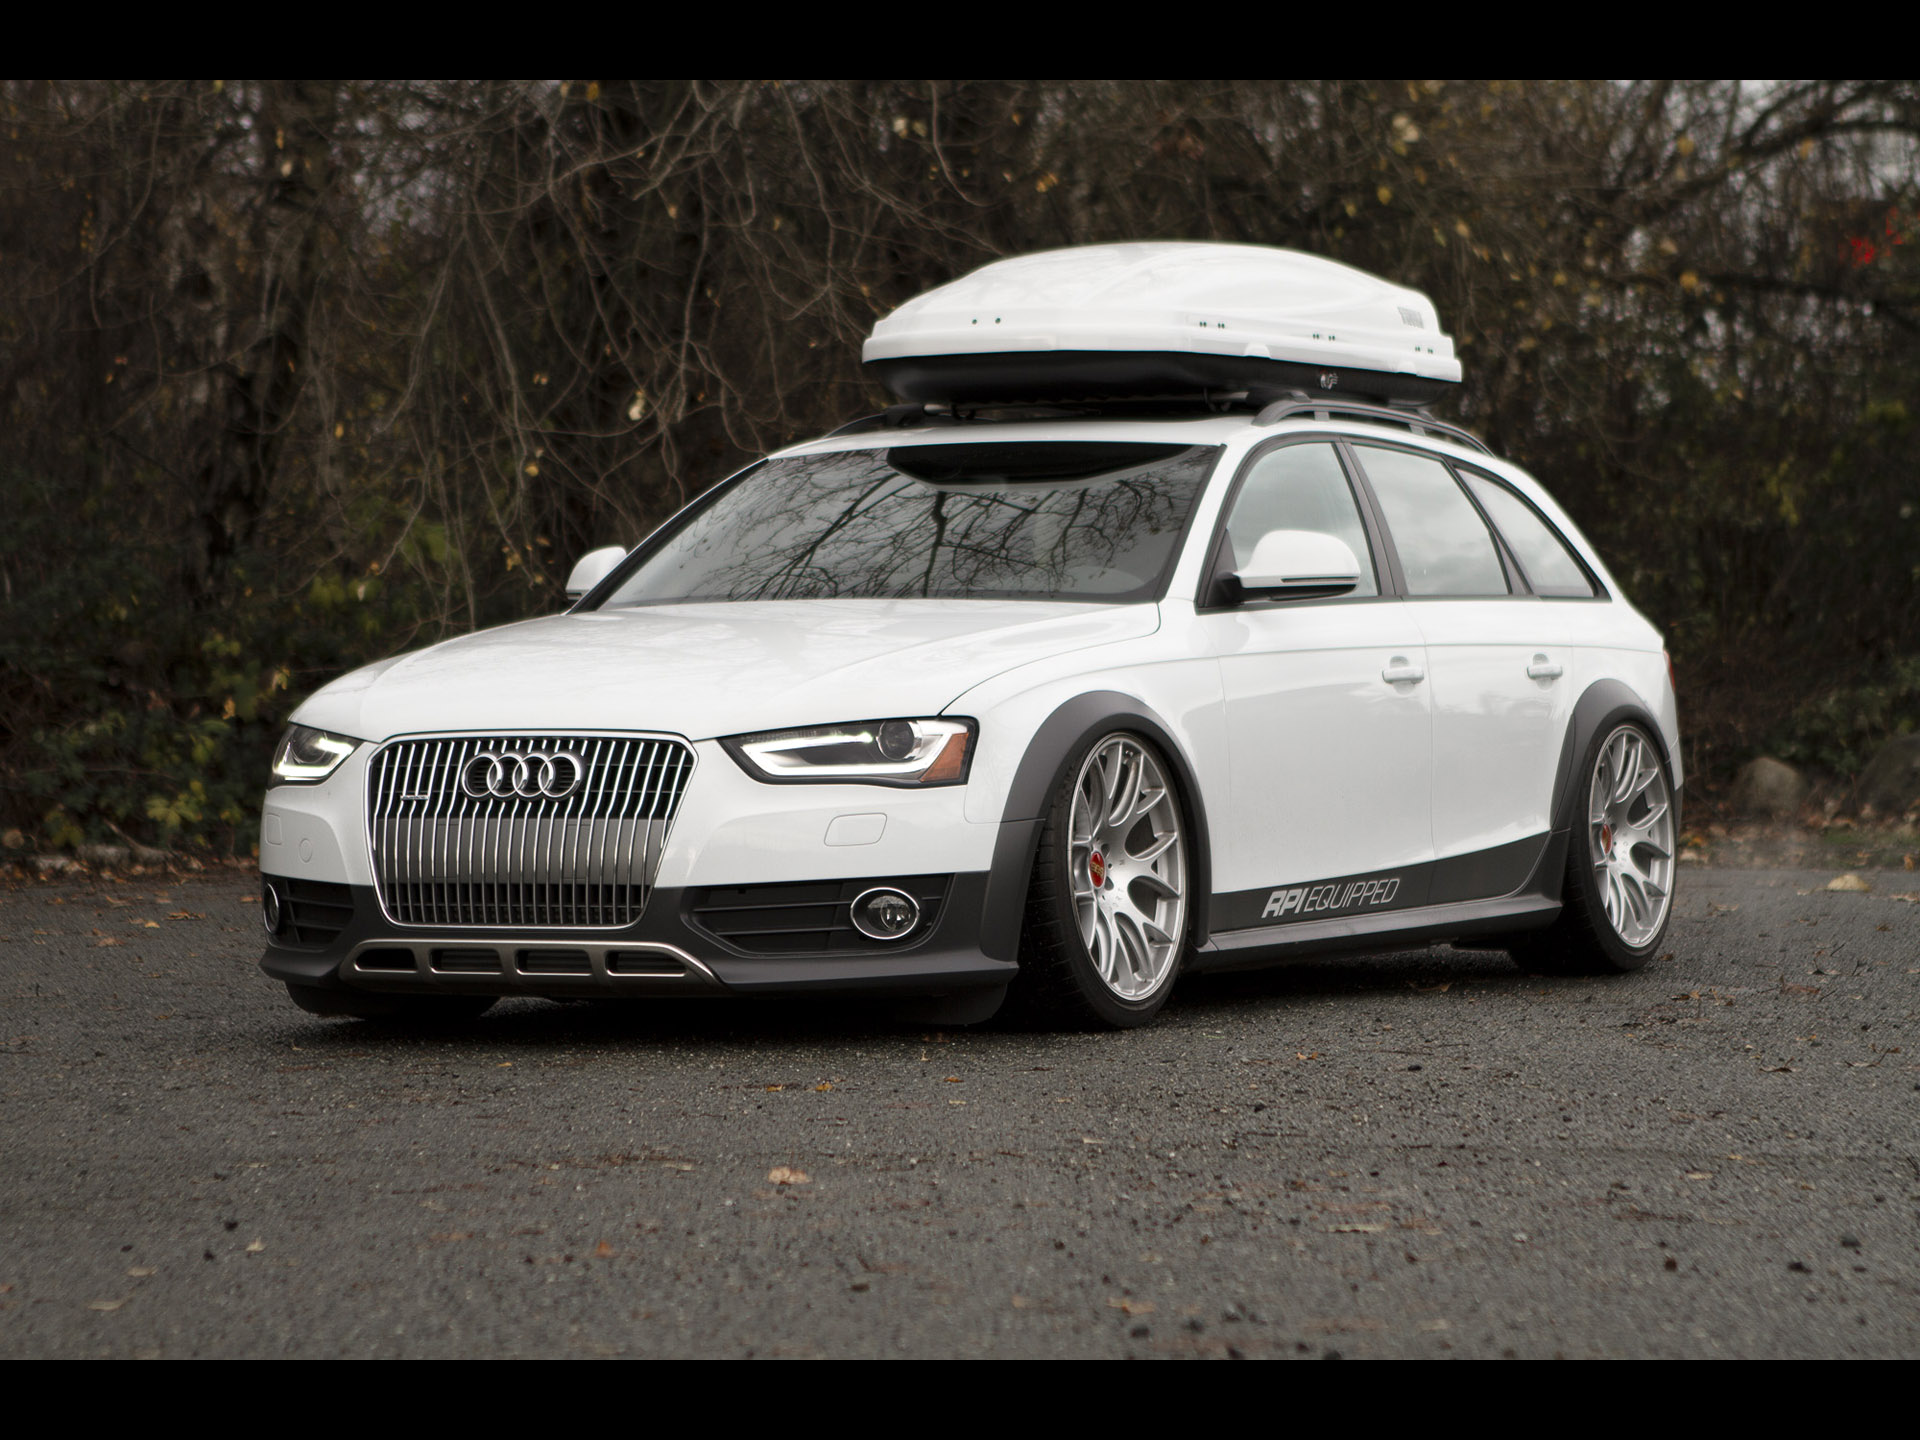 Rpi Equipped Audi A4 Allroad Quattro 2012 アウディに嵌まる